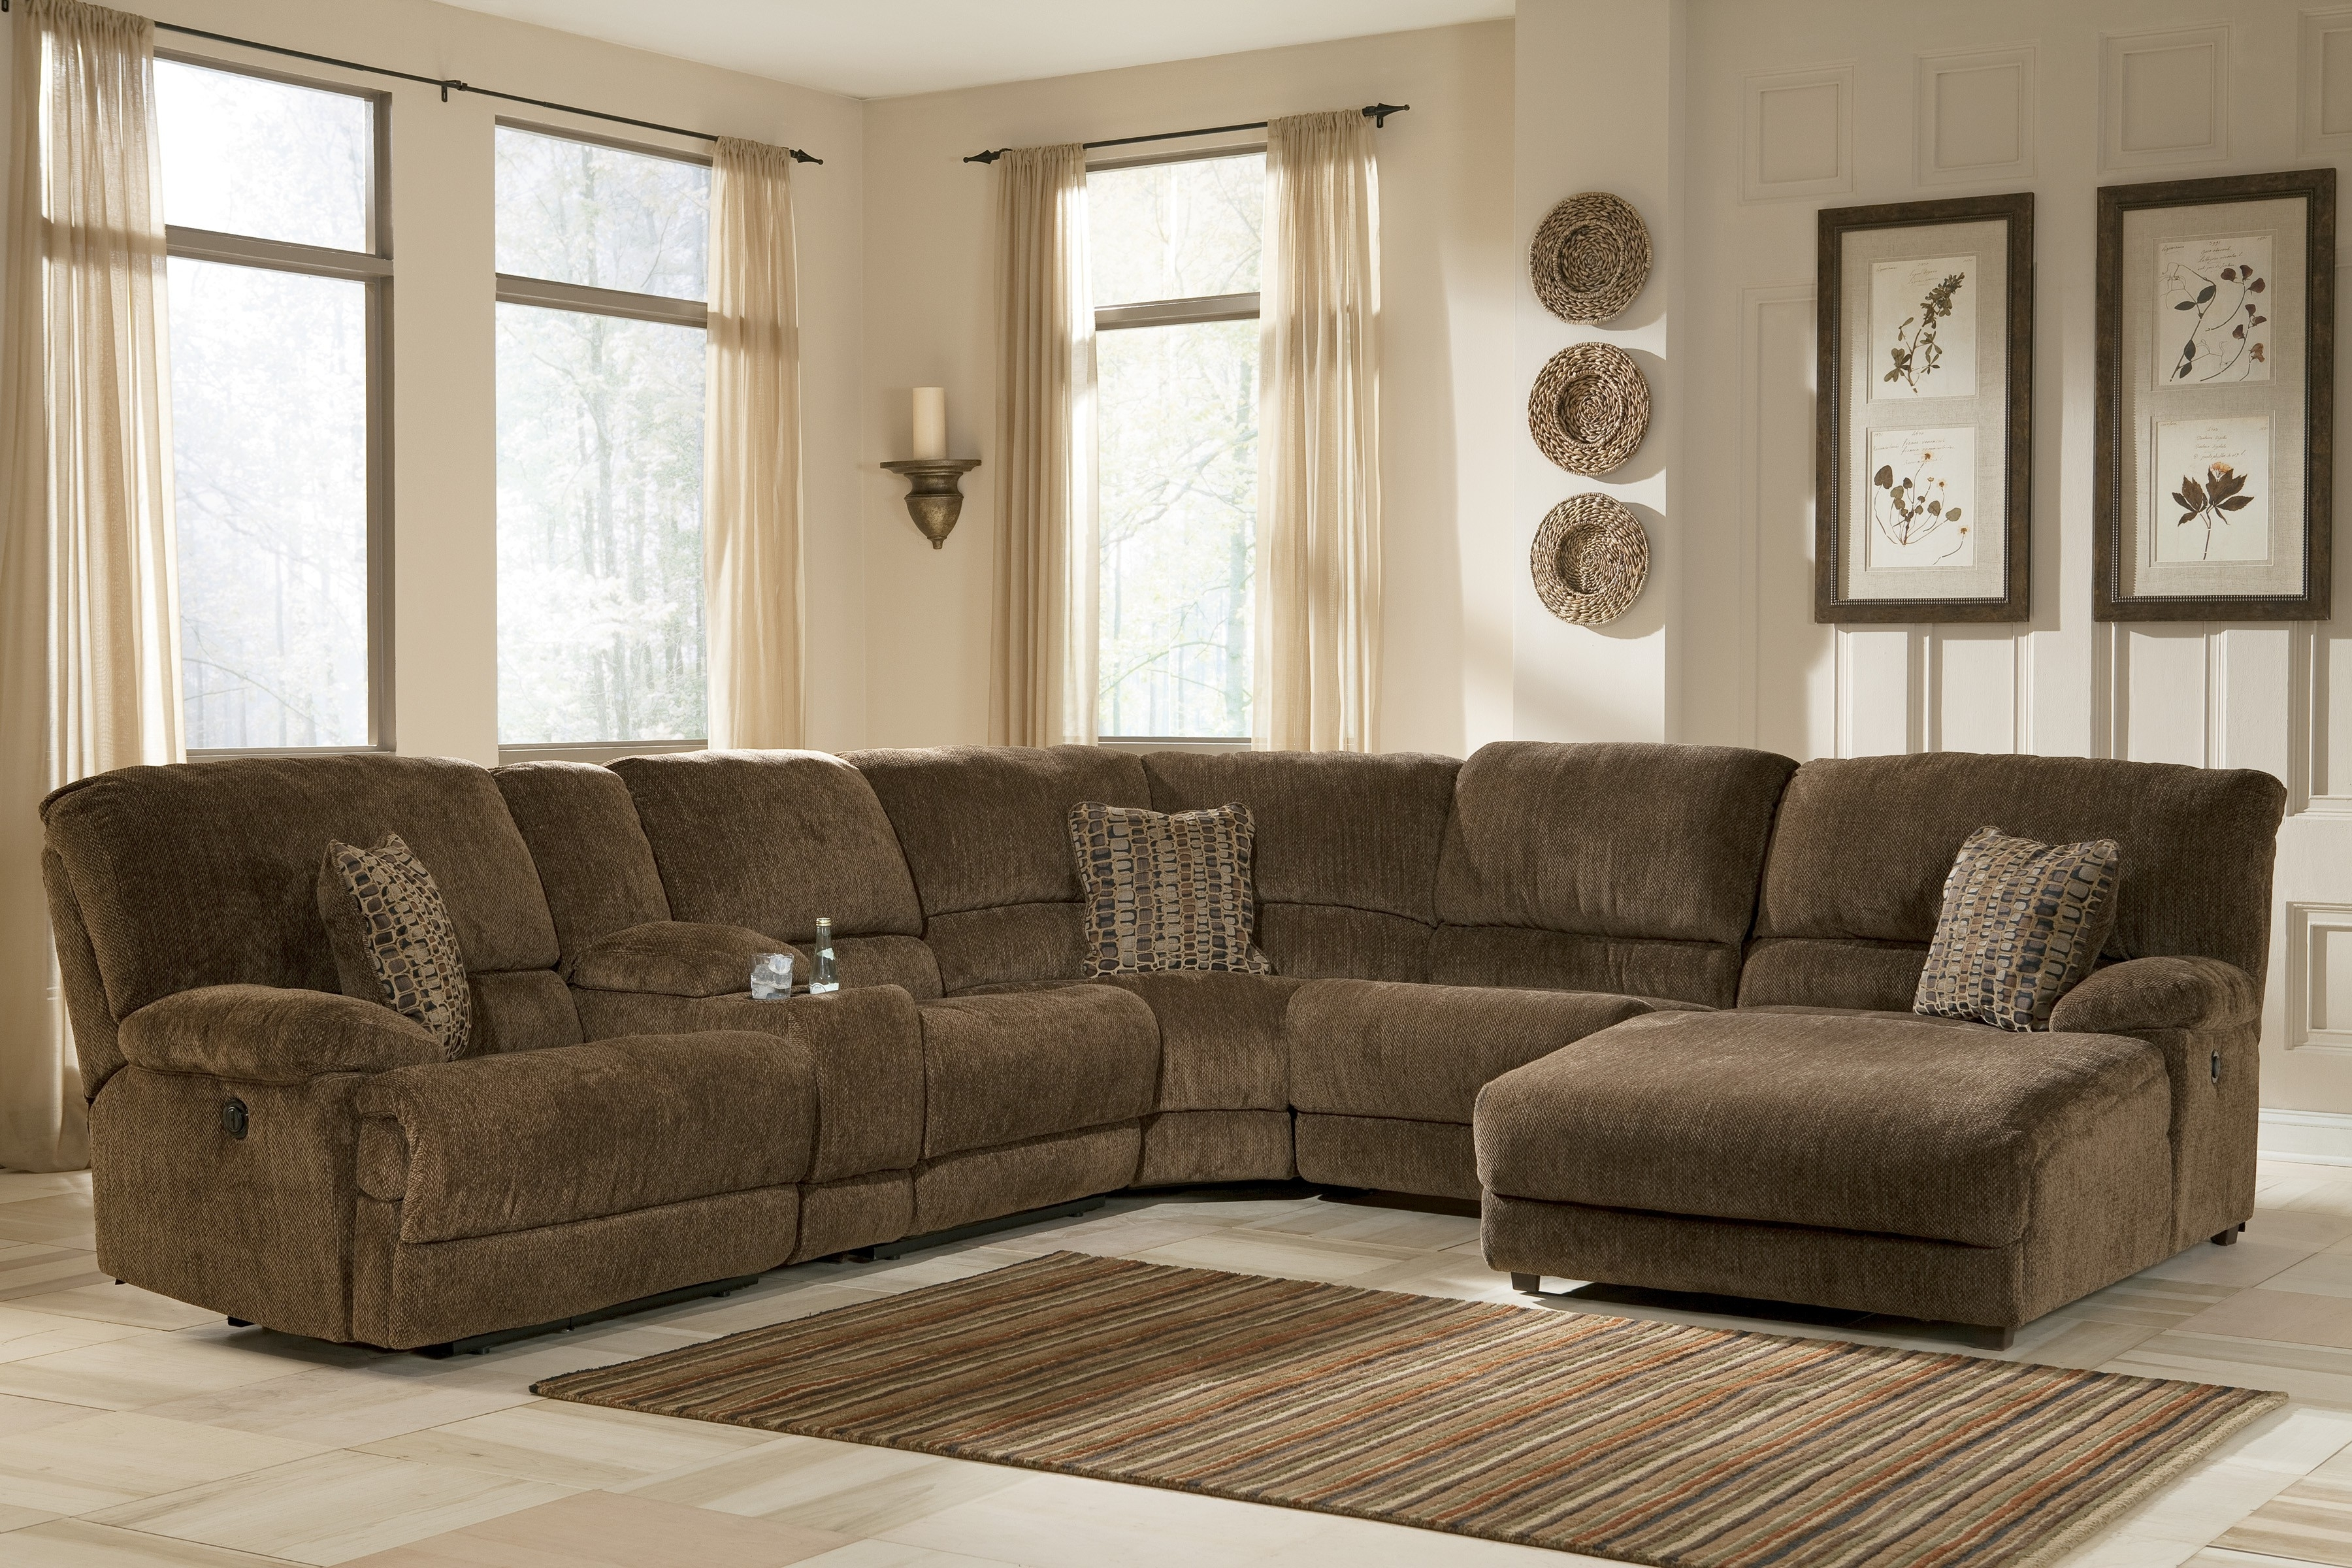 Sectional Sofas With Recliners With Regard To Recent Lazy Boy Sleeper Recliners Fabric Reclining Loveseat Full Layout (View 15 of 20)